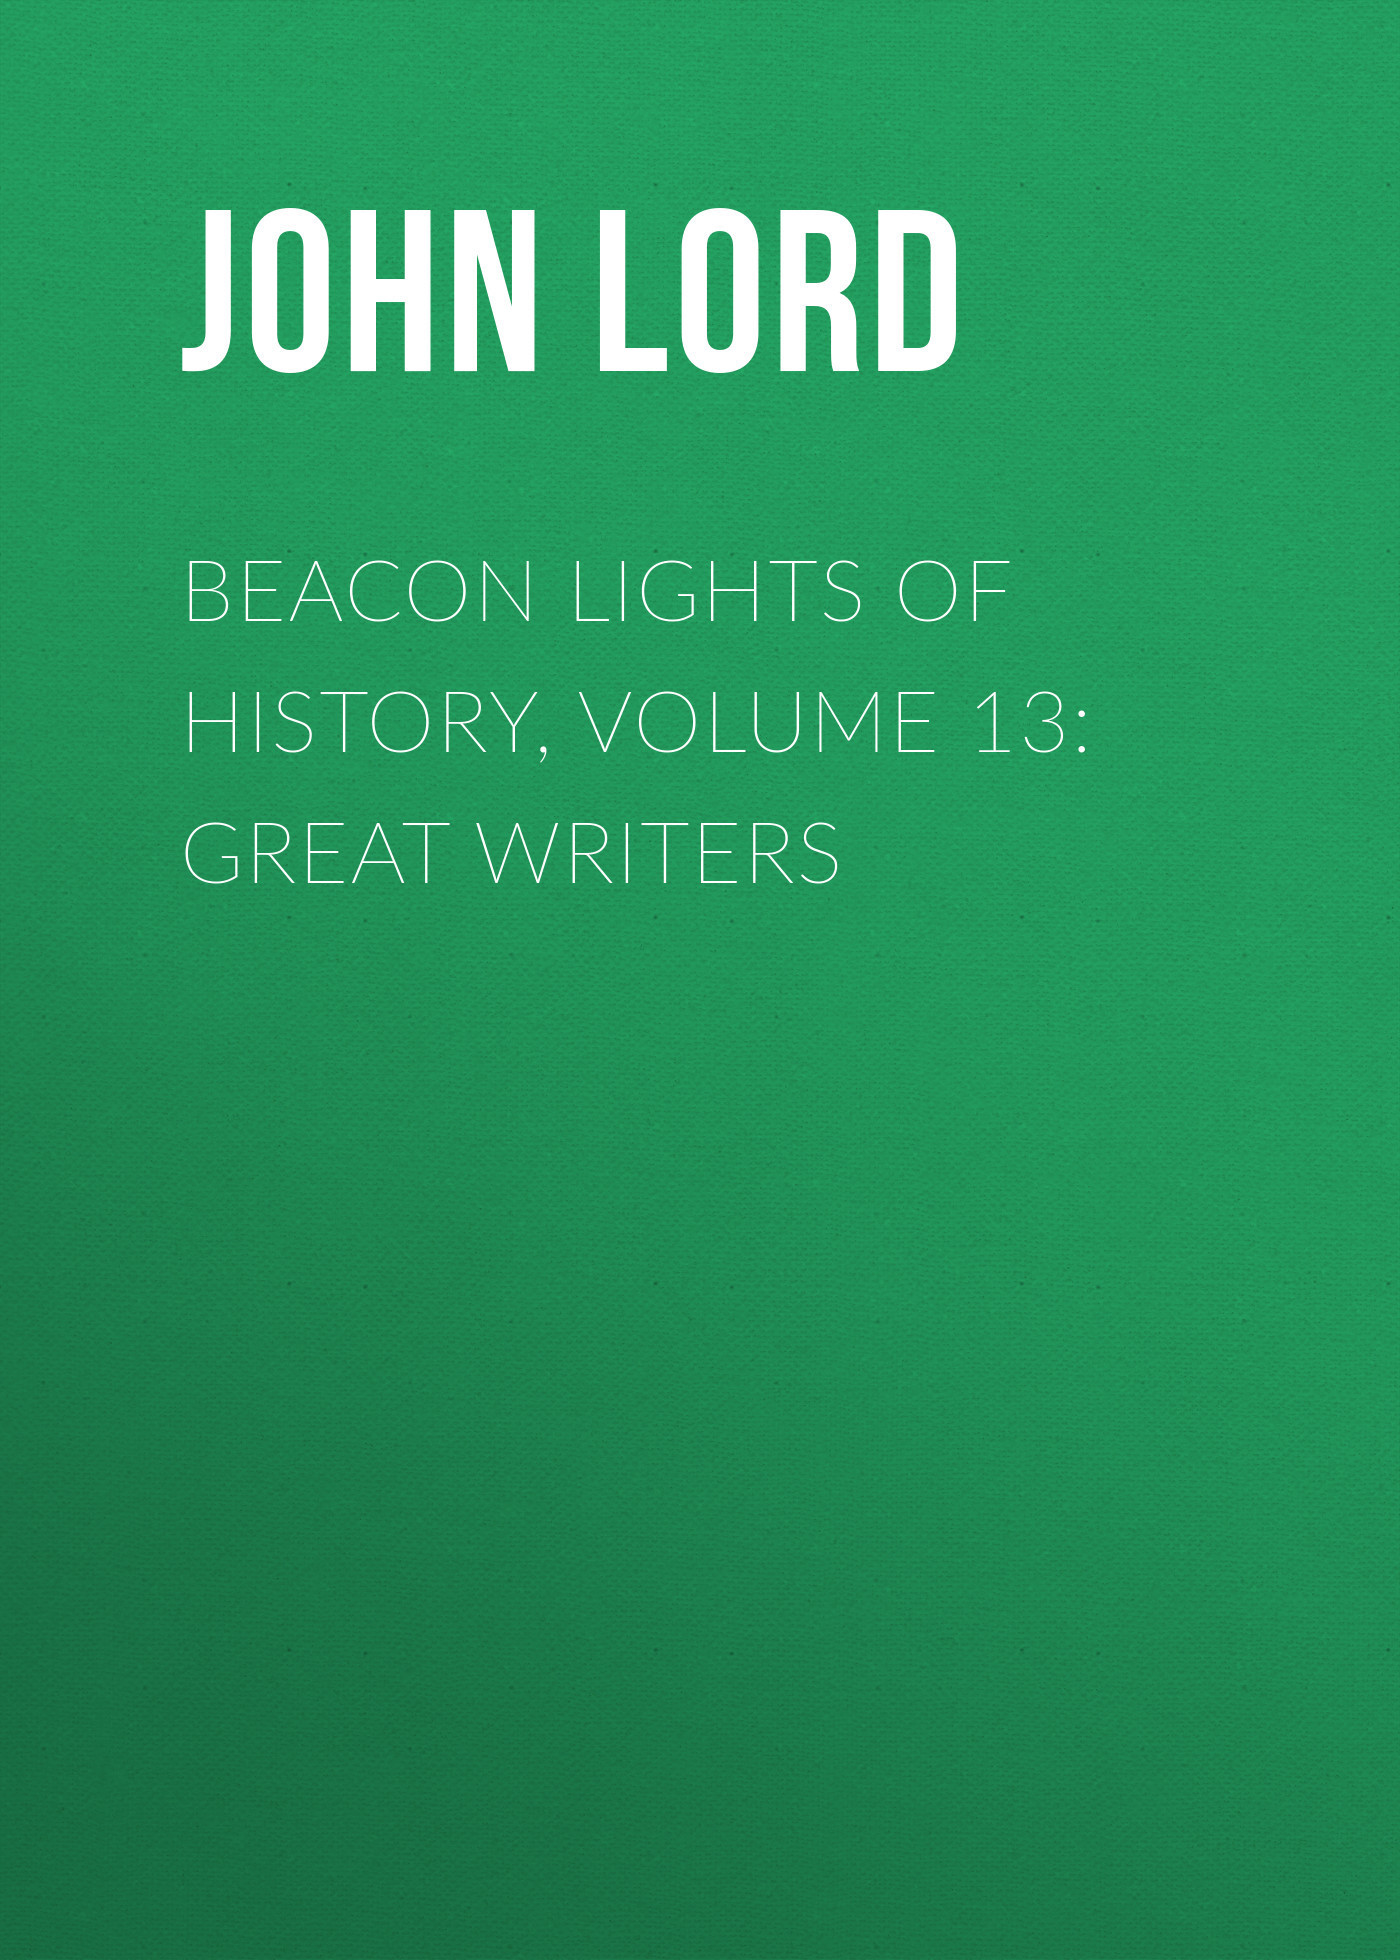 John Lord Beacon Lights of History, Volume 13: Great Writers